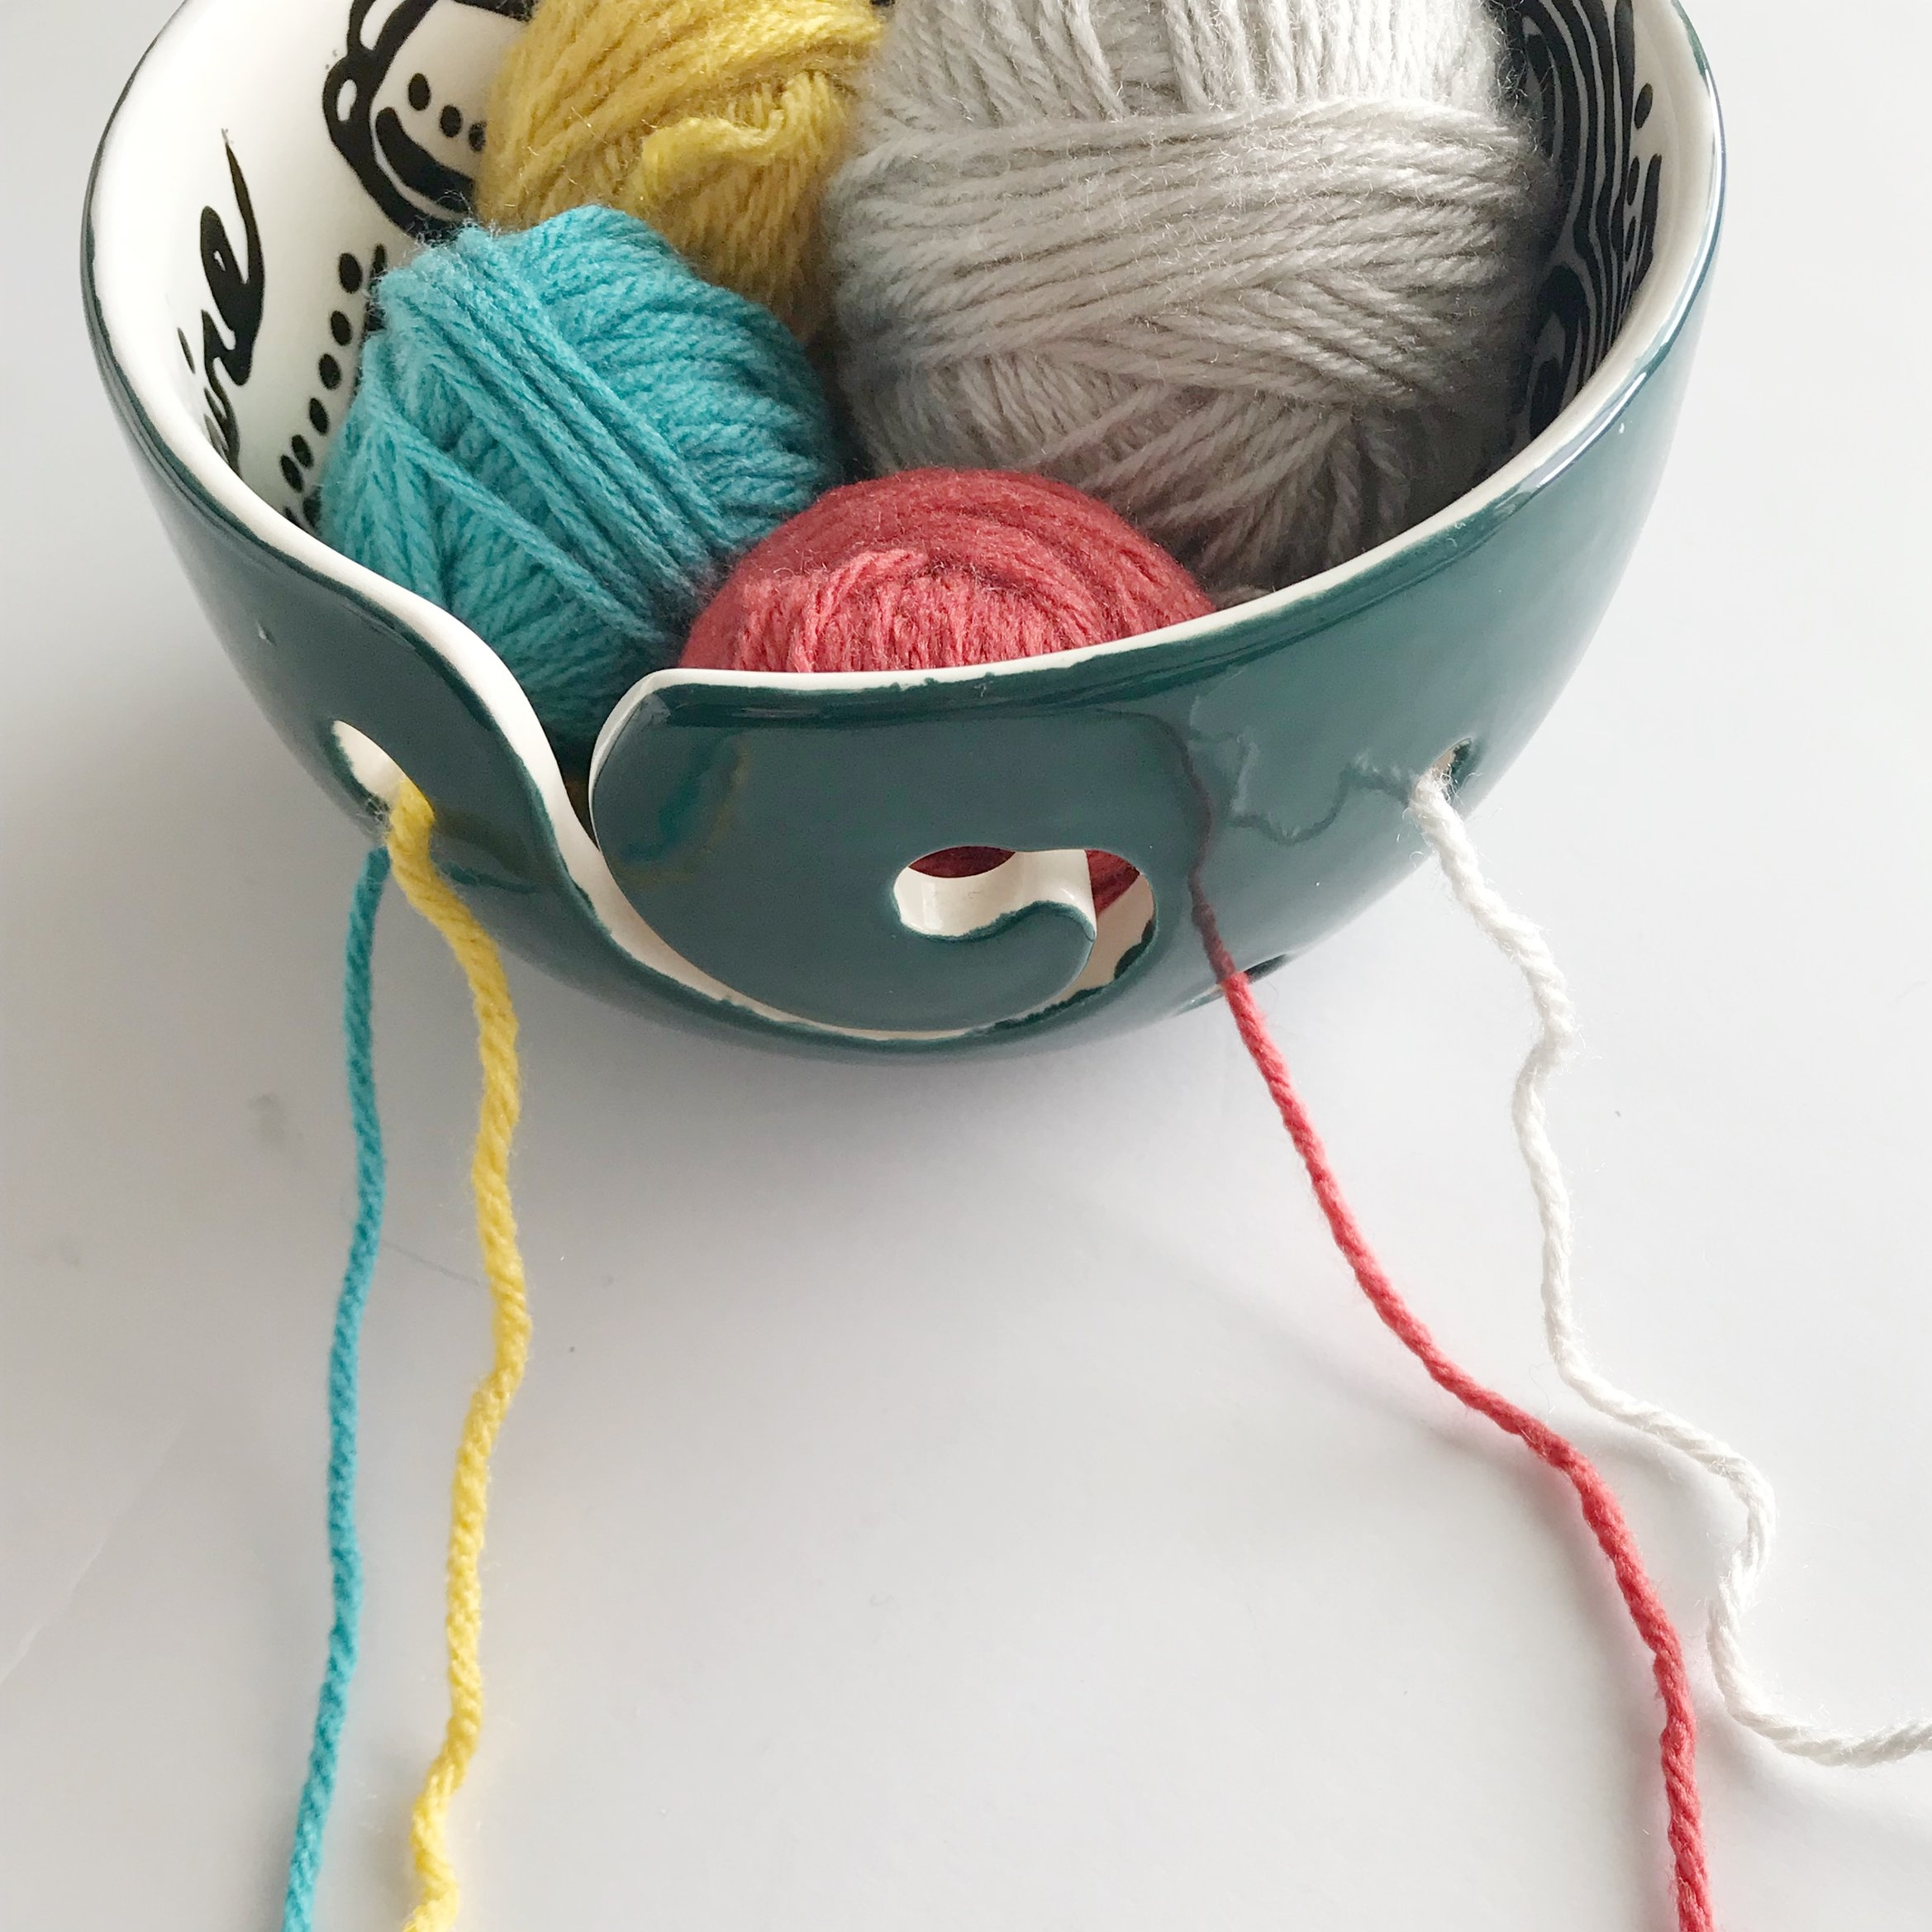 how to keep yarn from tangling